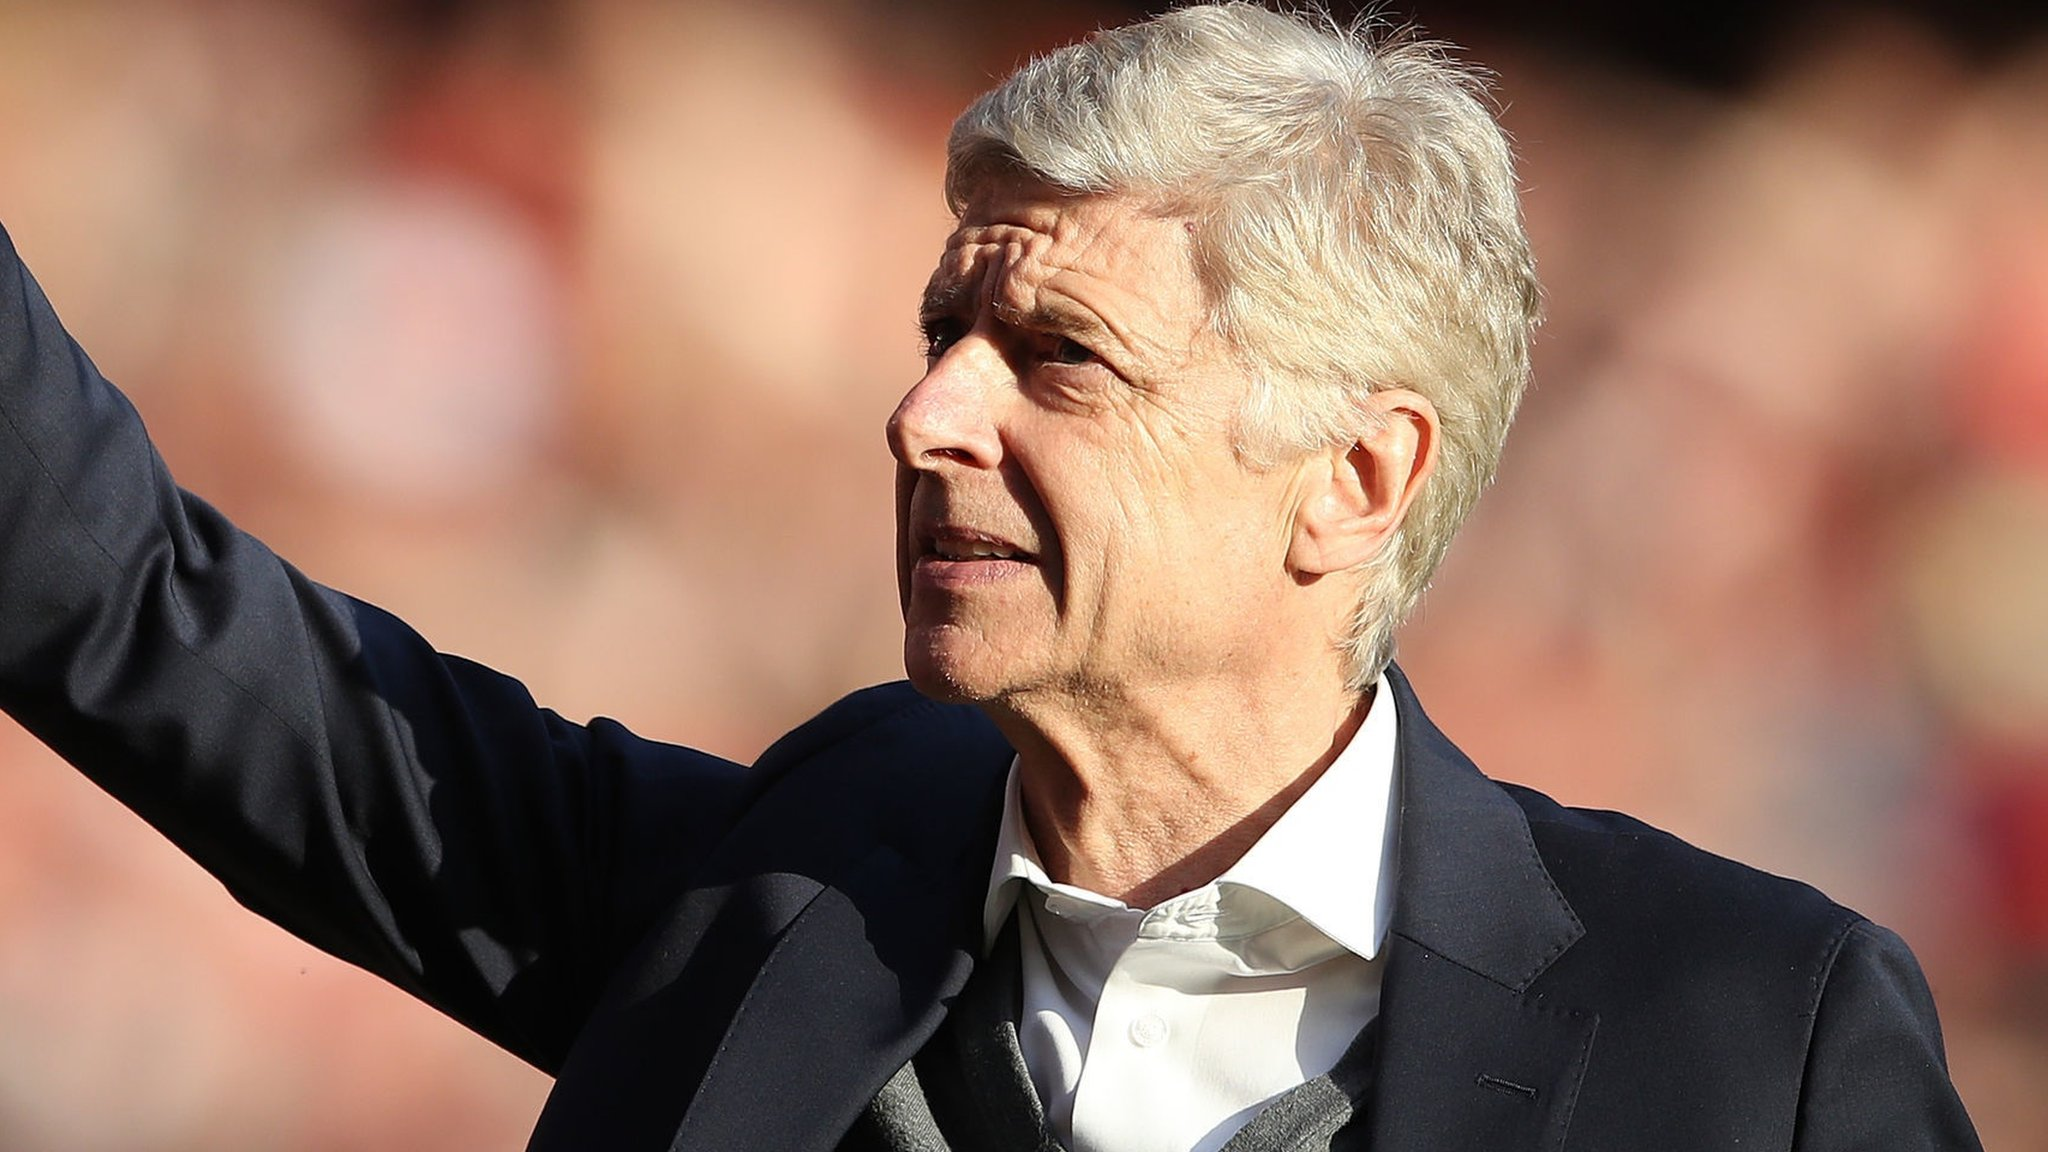 Ex-Arsenal boss Wenger has offers from 'all over the world'